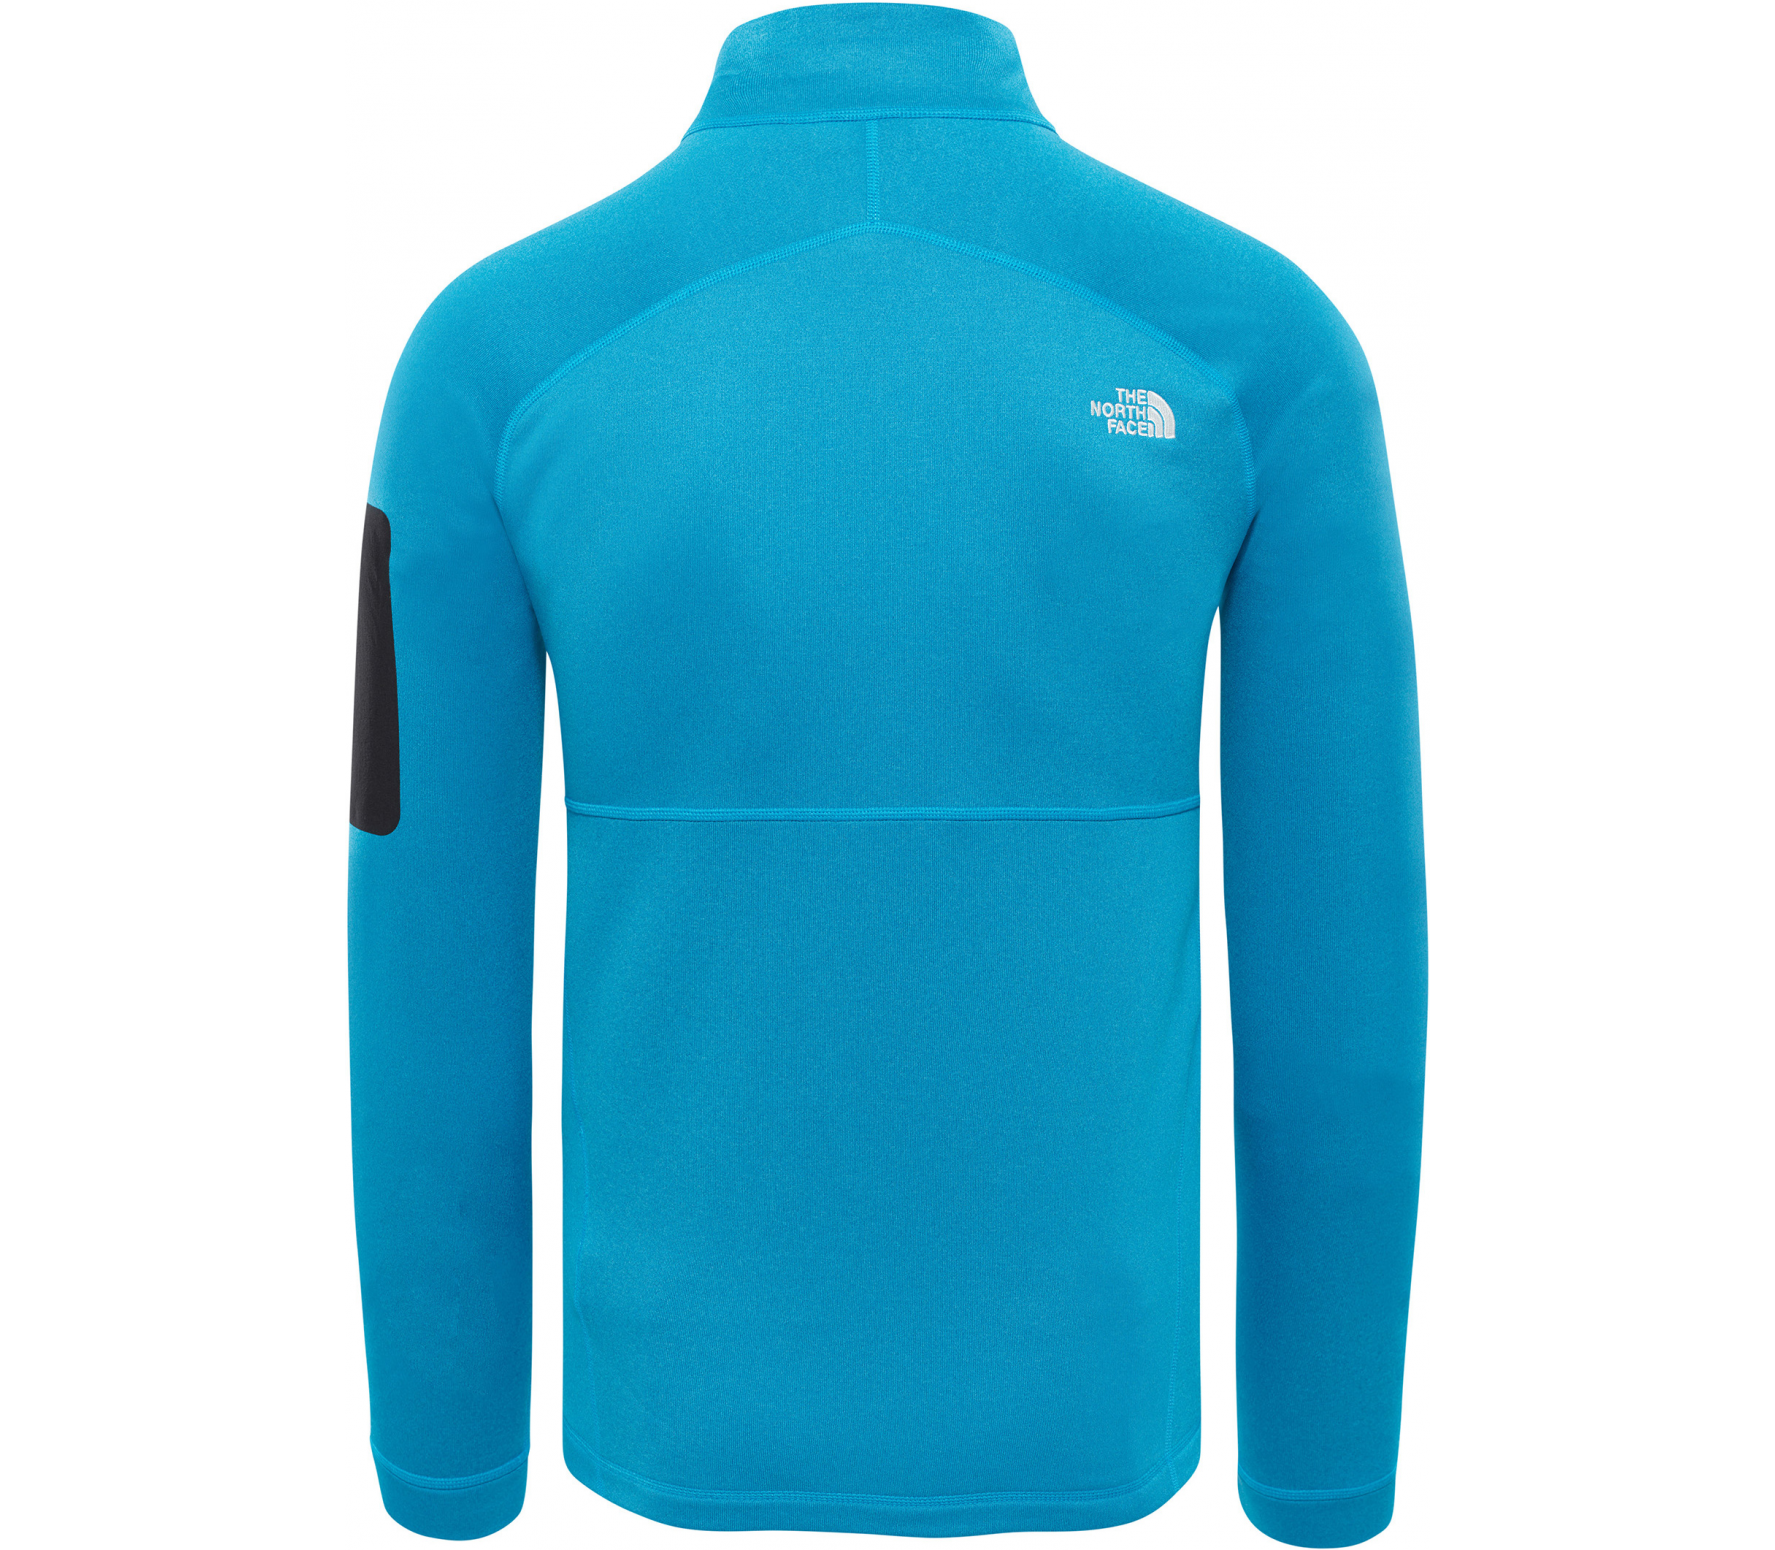 5727d1d99 The North Face - Impendor Powerdry men's Power Stretch jacket (blue)